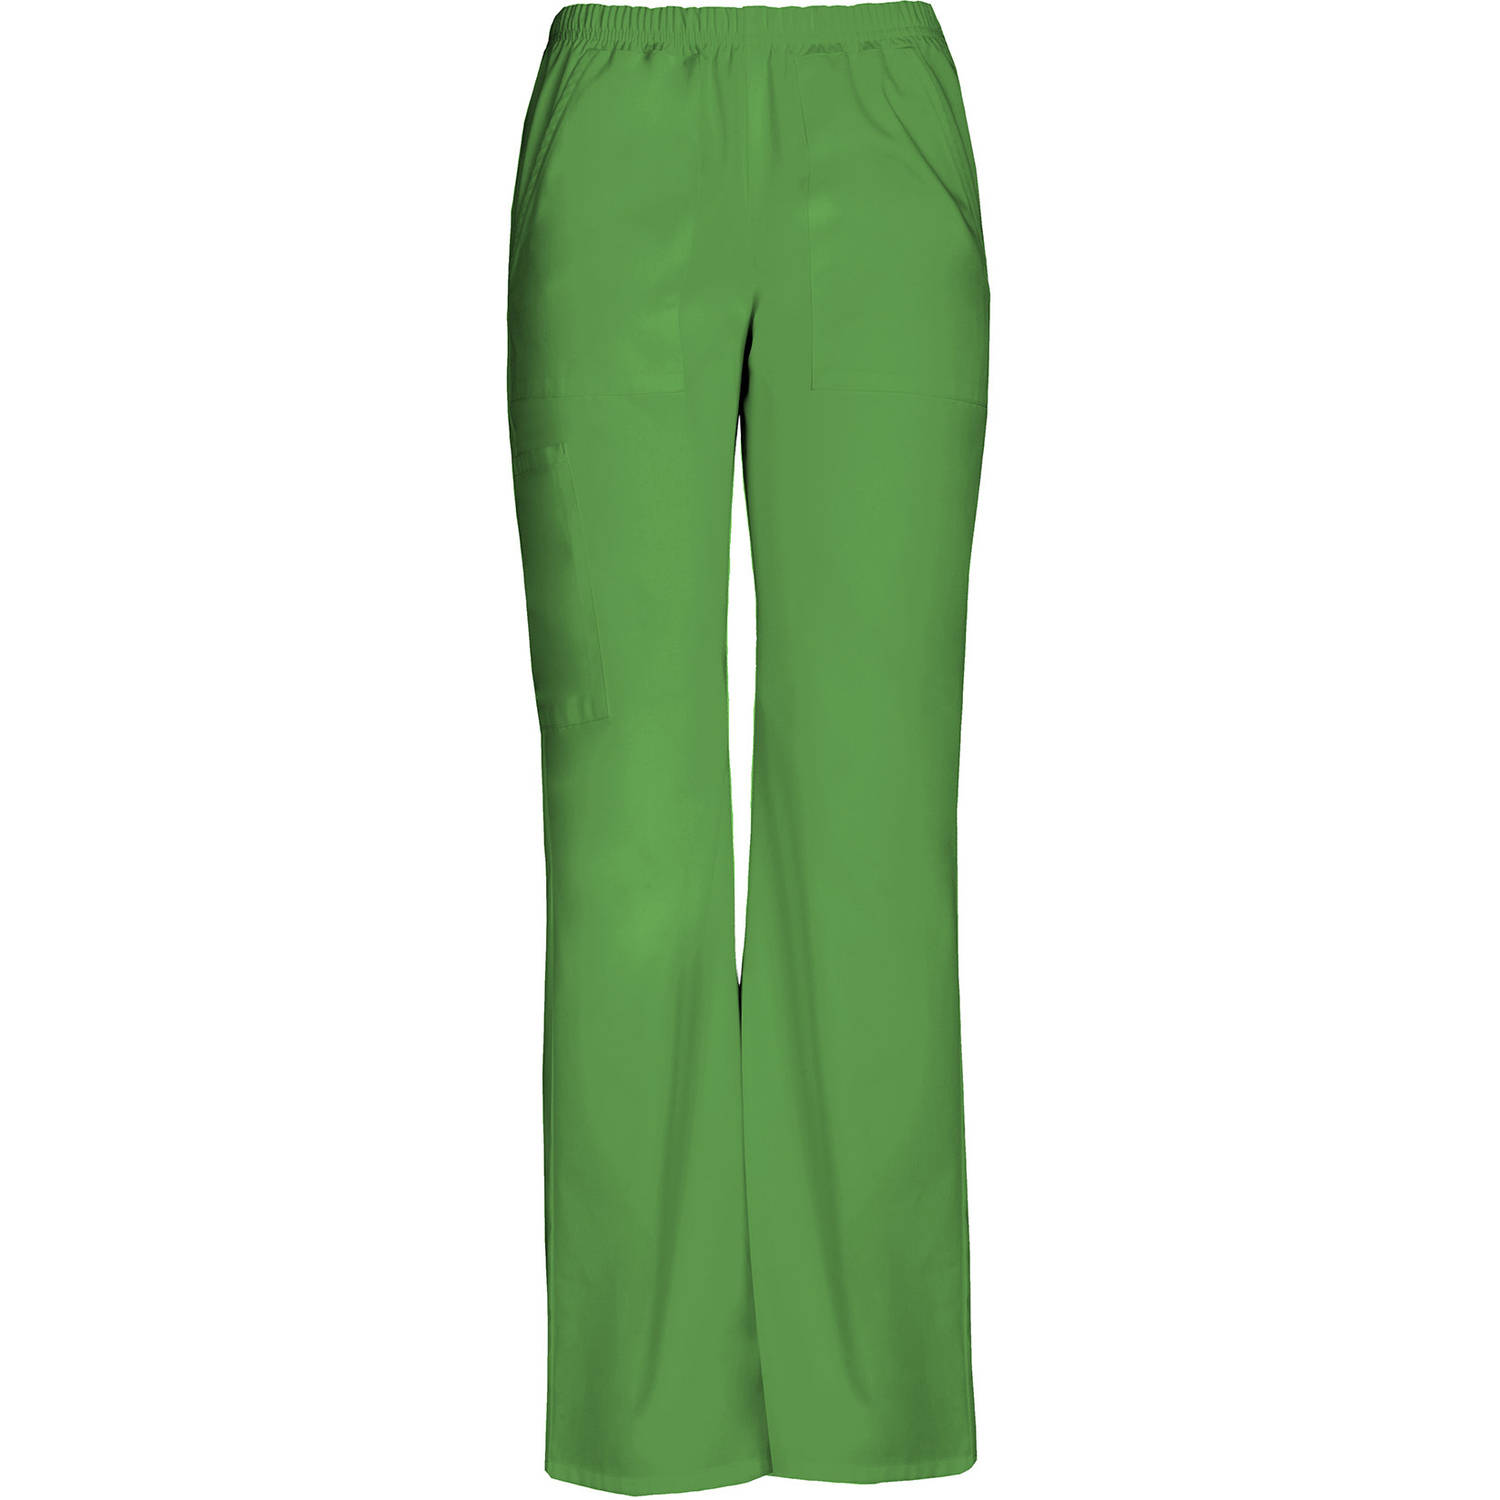 SCRUBSTAR Women's Core Essentials Pull On Scrub Pant